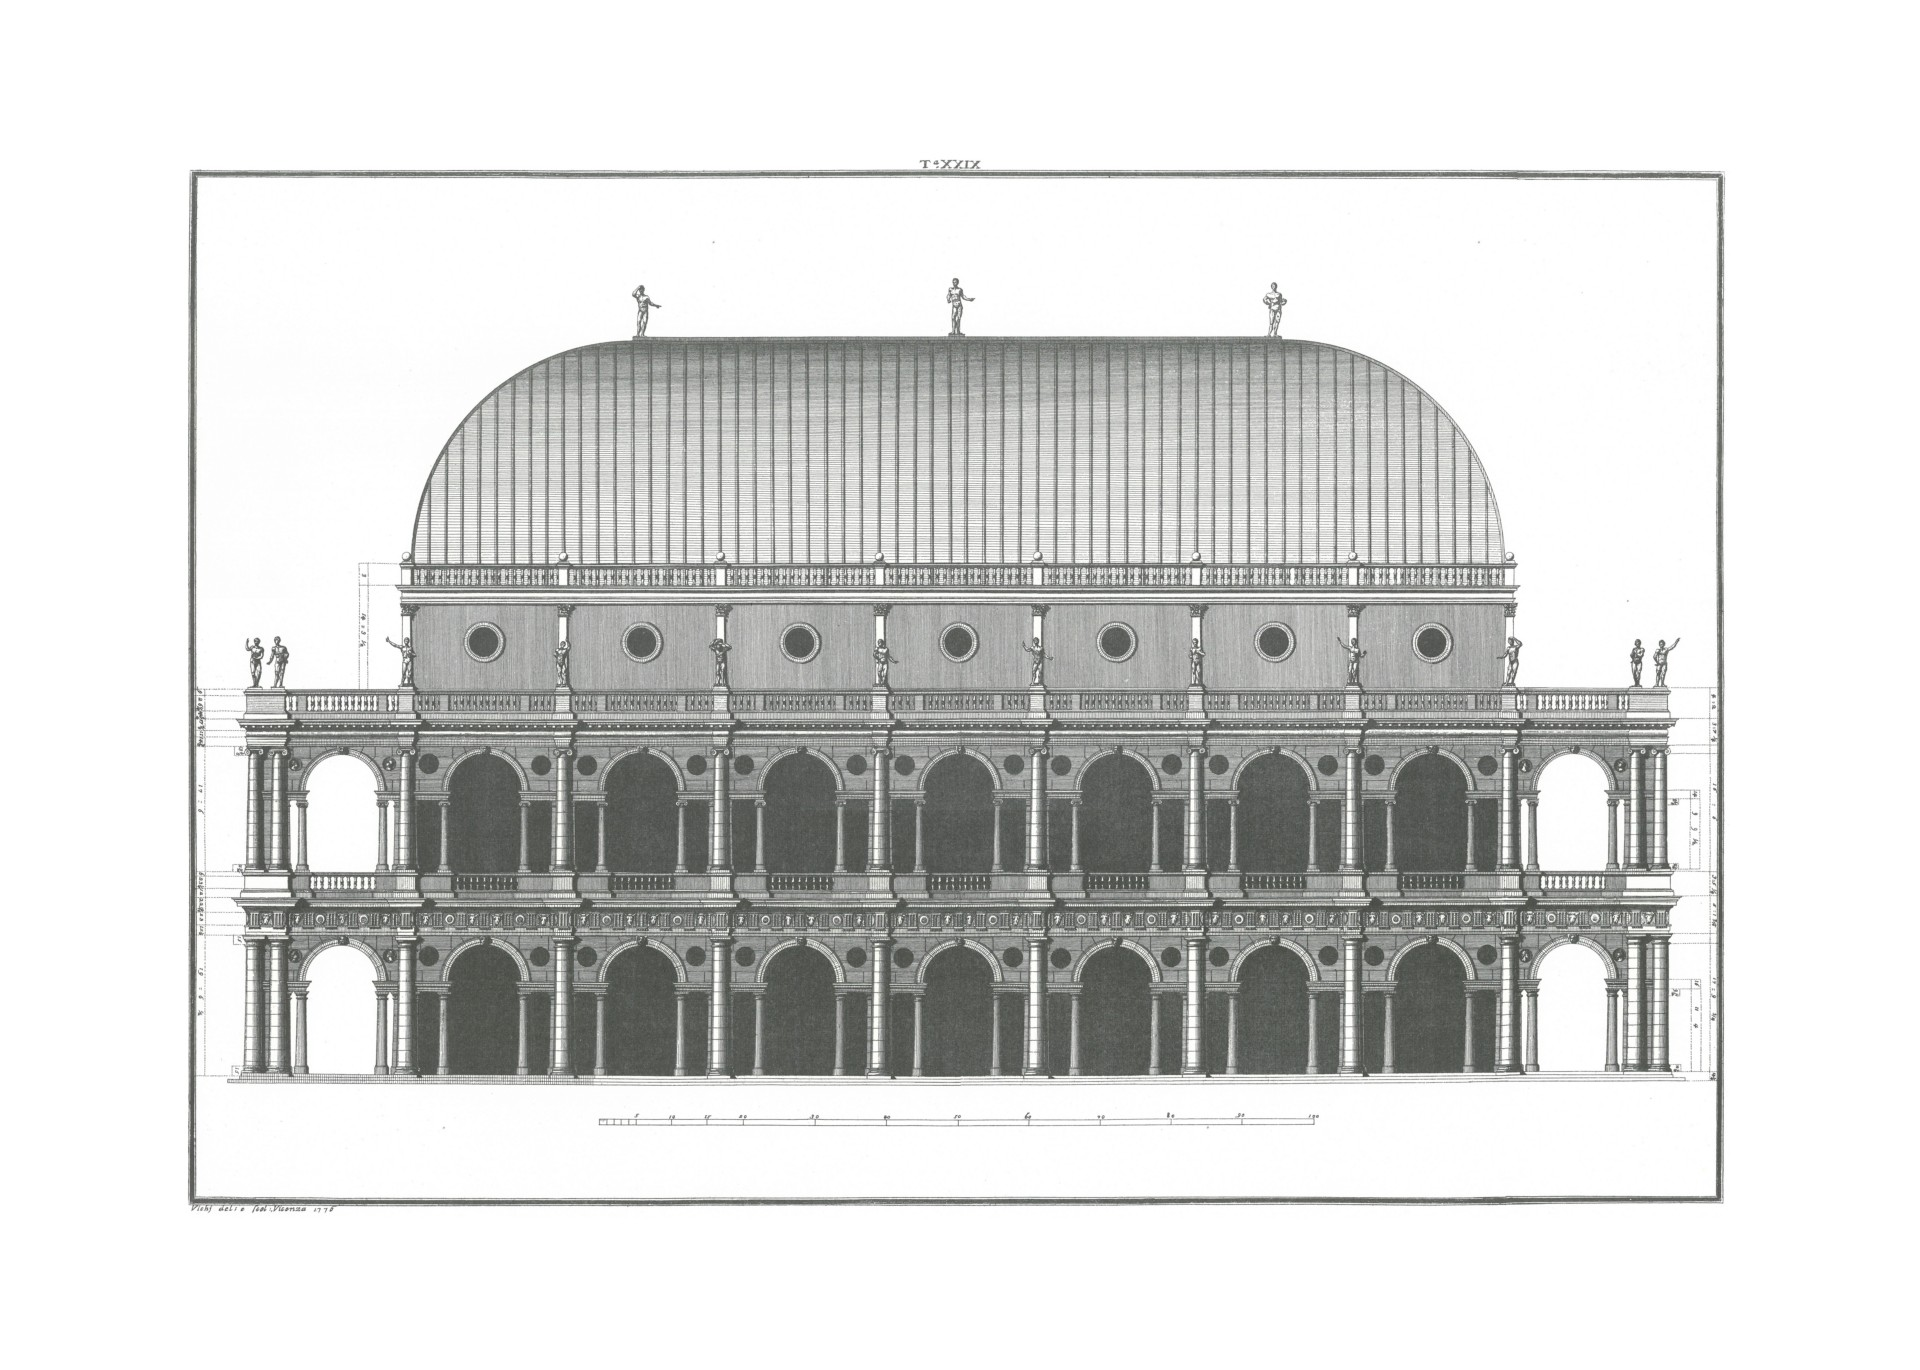 David Chipperfield and architecture on exhibit in Vicenza